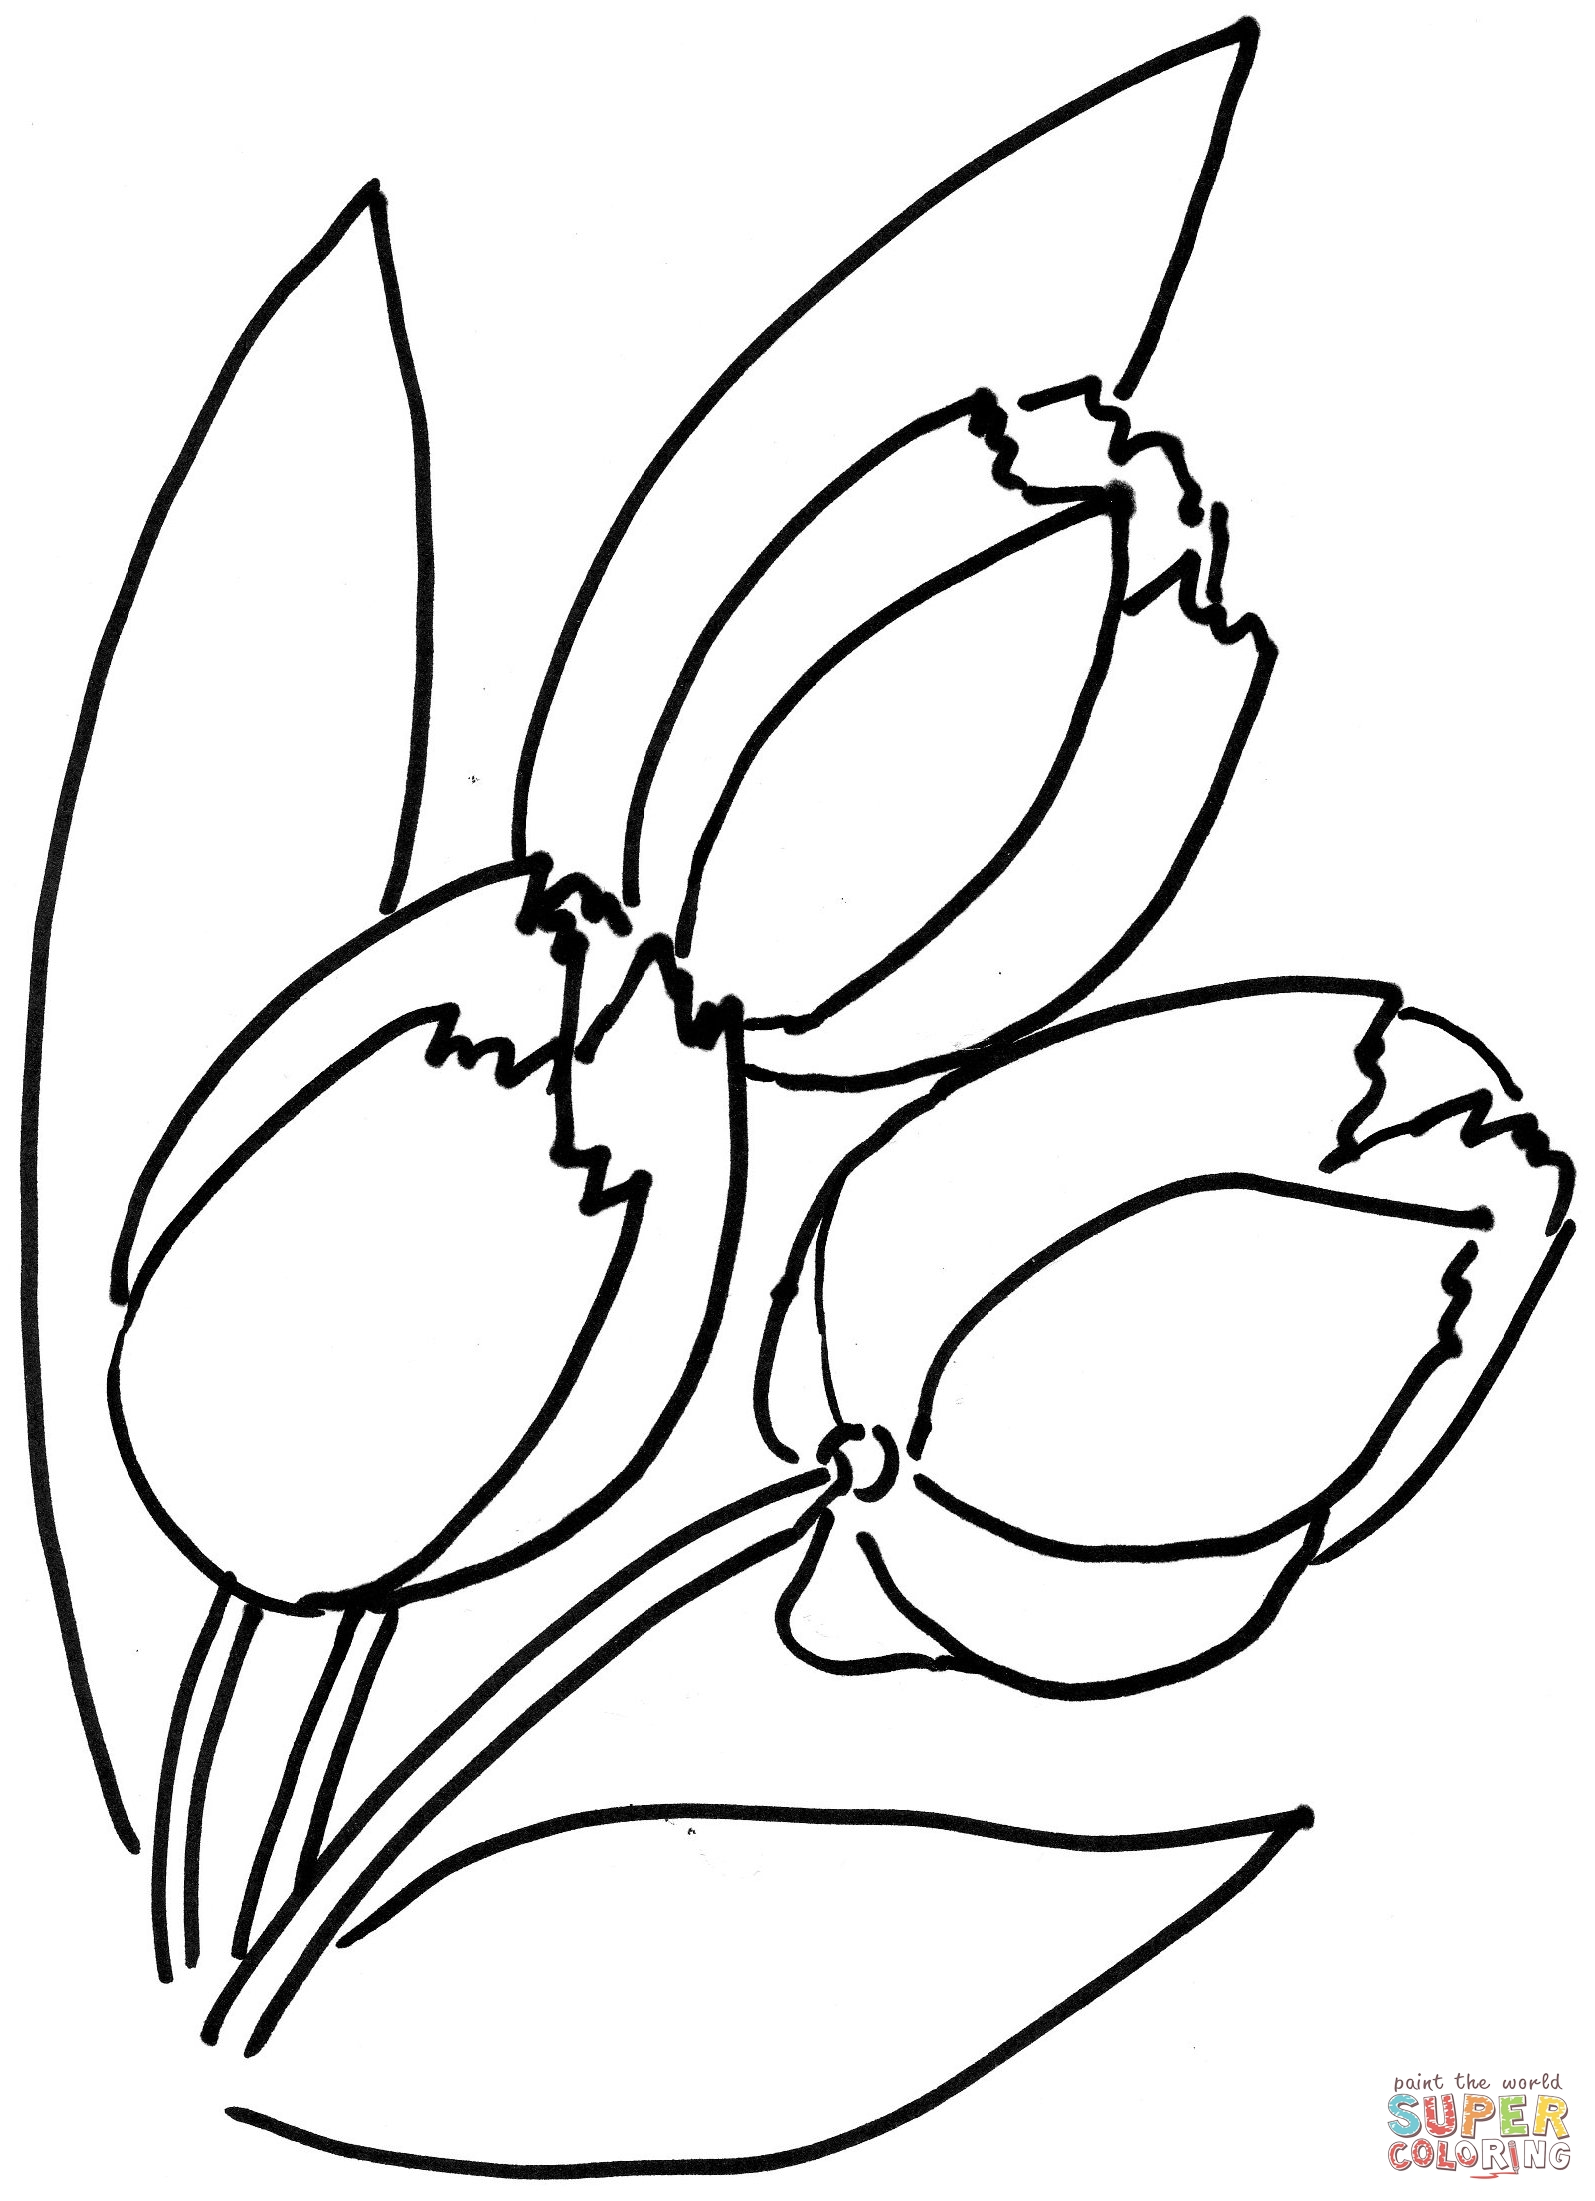 tulip coloring pictures tulips to color clipart best pictures coloring tulip